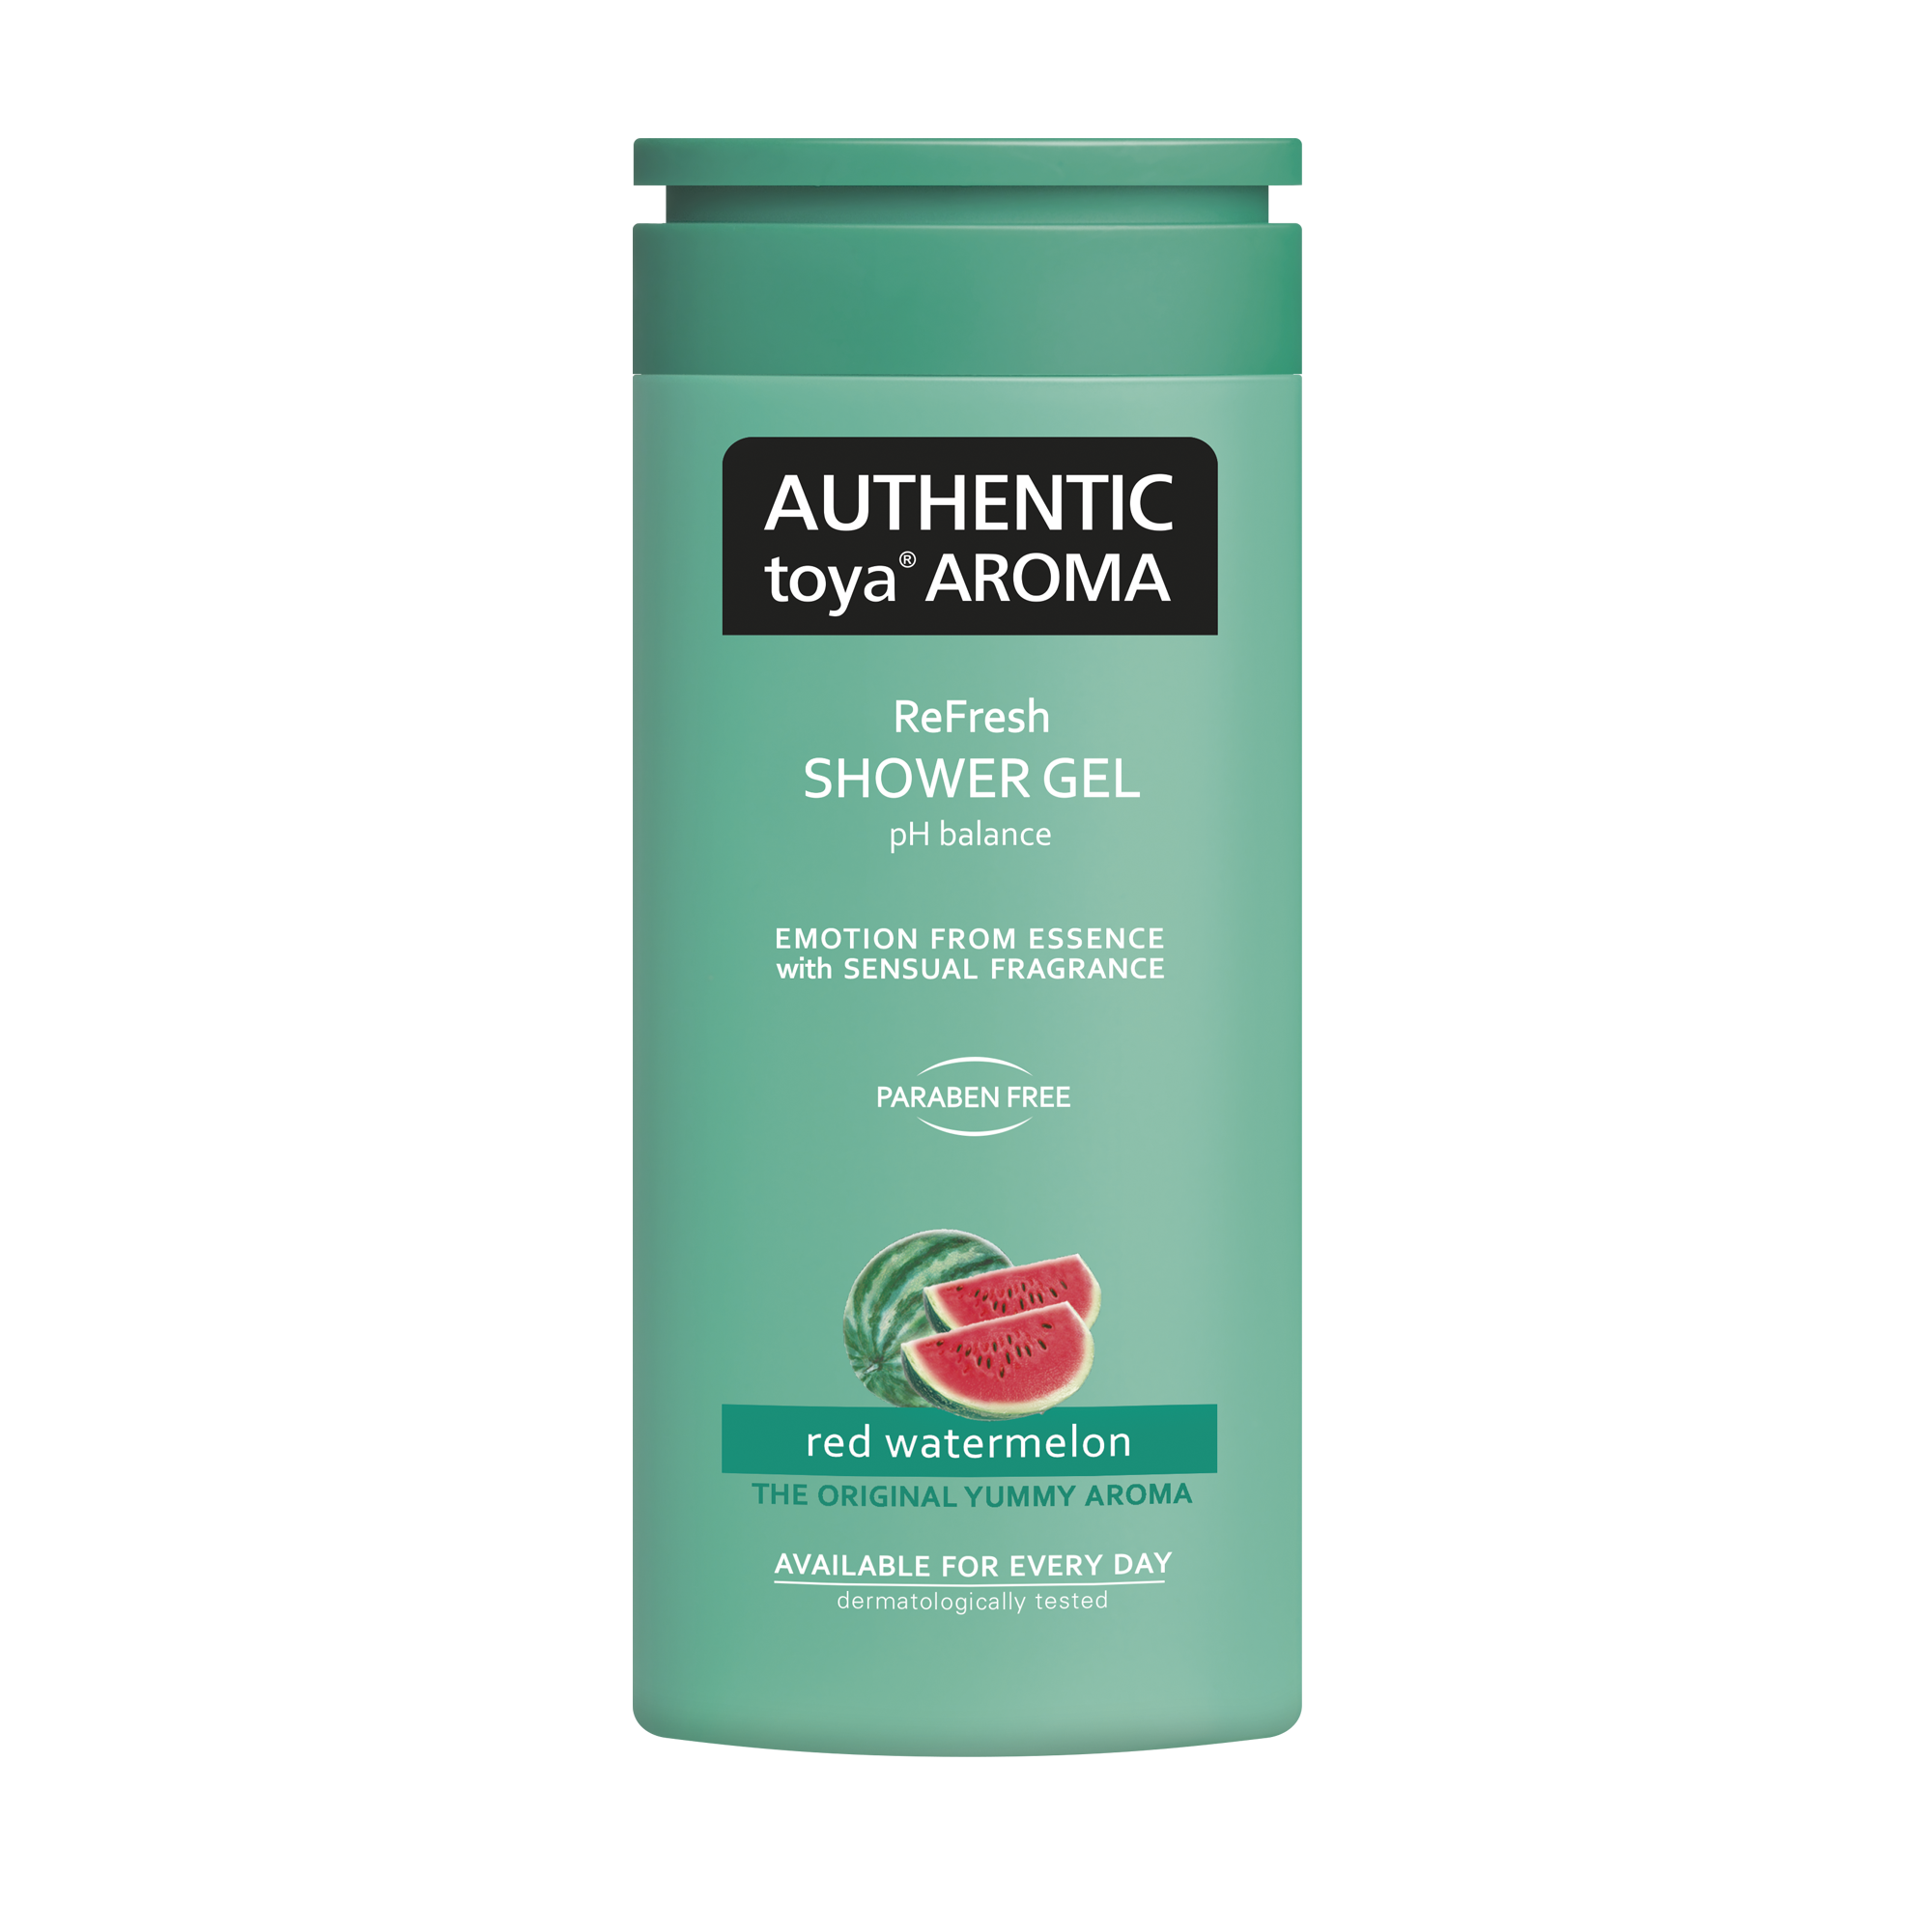 AUTHENTIC toya AROMA red watermelon shower gel